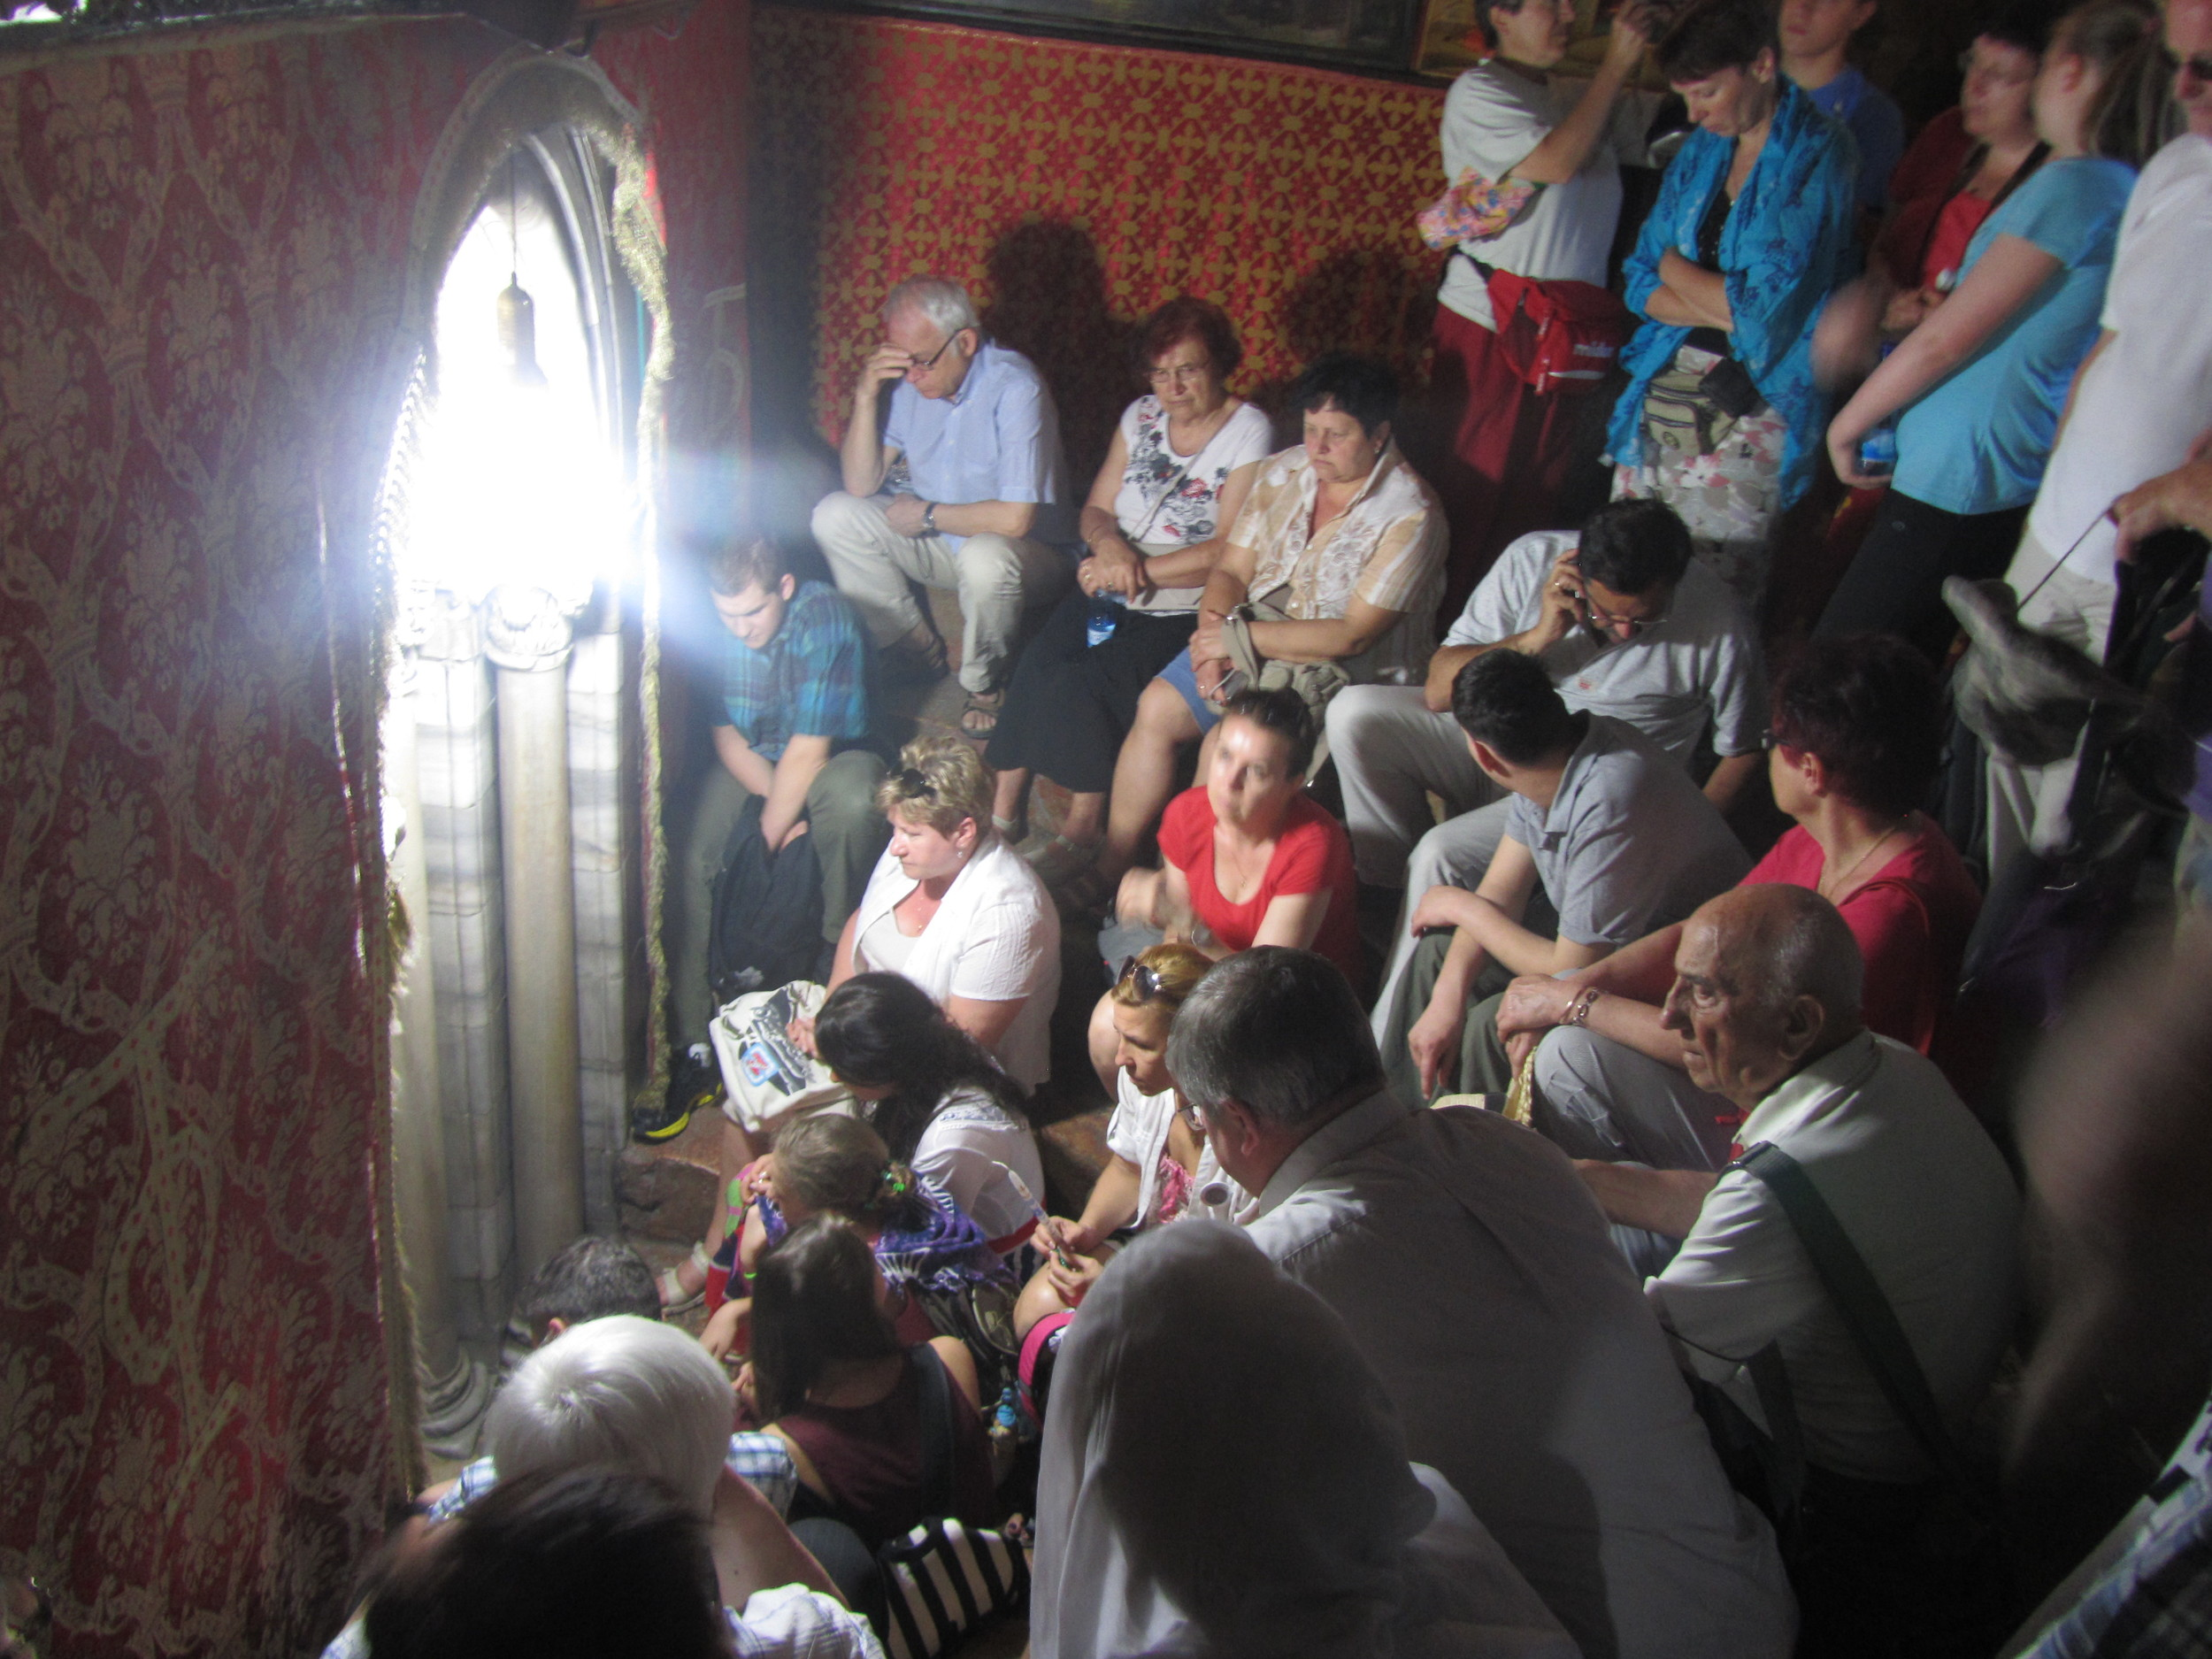 Pilgrims patiently waiting to enter the cave of Jesus' birthplace in Bethlehem